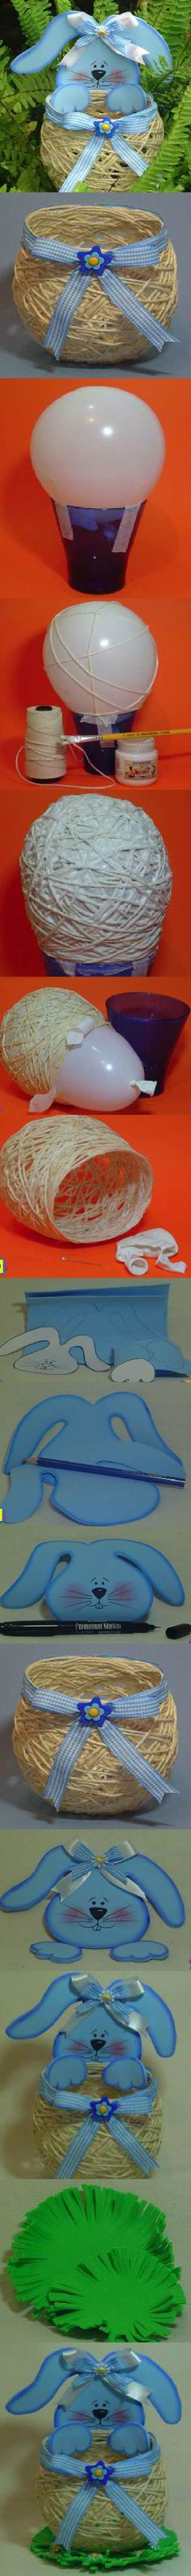 DIY Yarn String Easter Basket